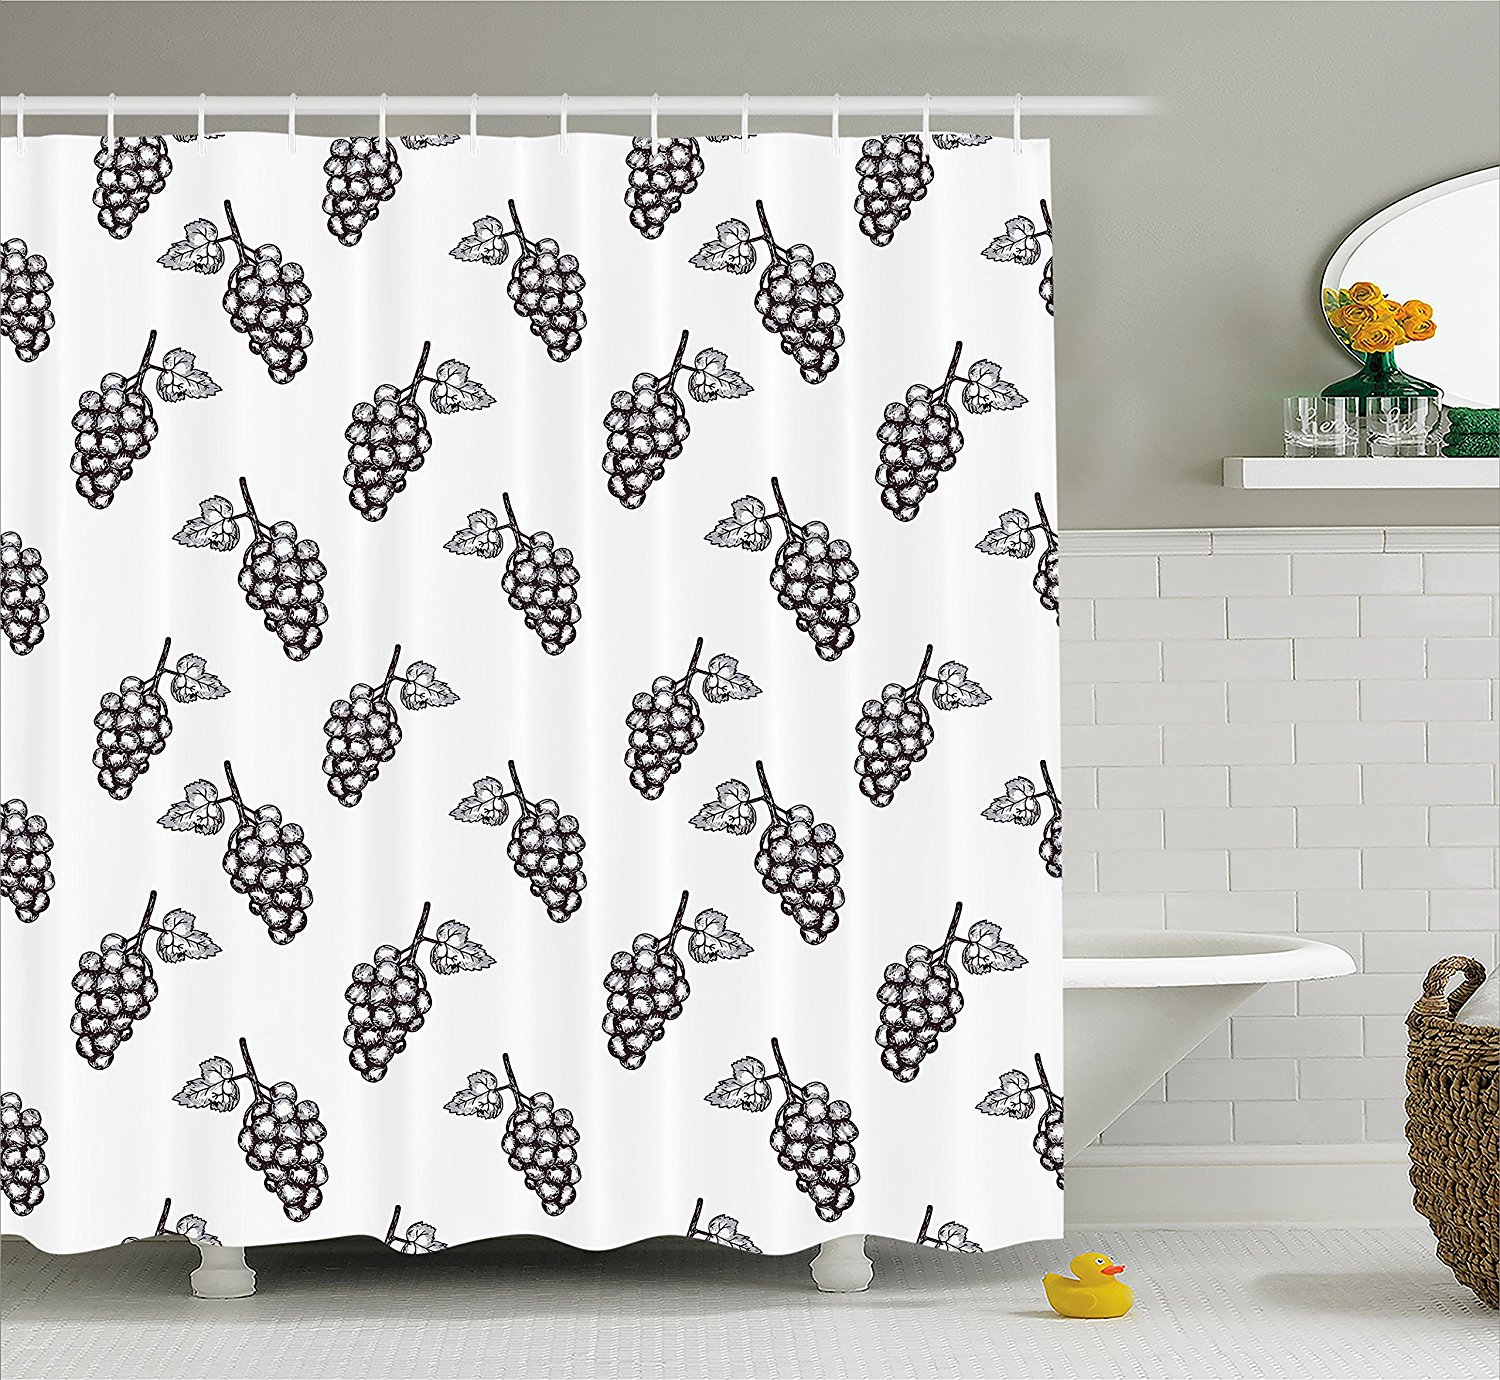 Black White Shower Curtain Sets Cat Pattern Sketchy With Hooks No Liner Needed,